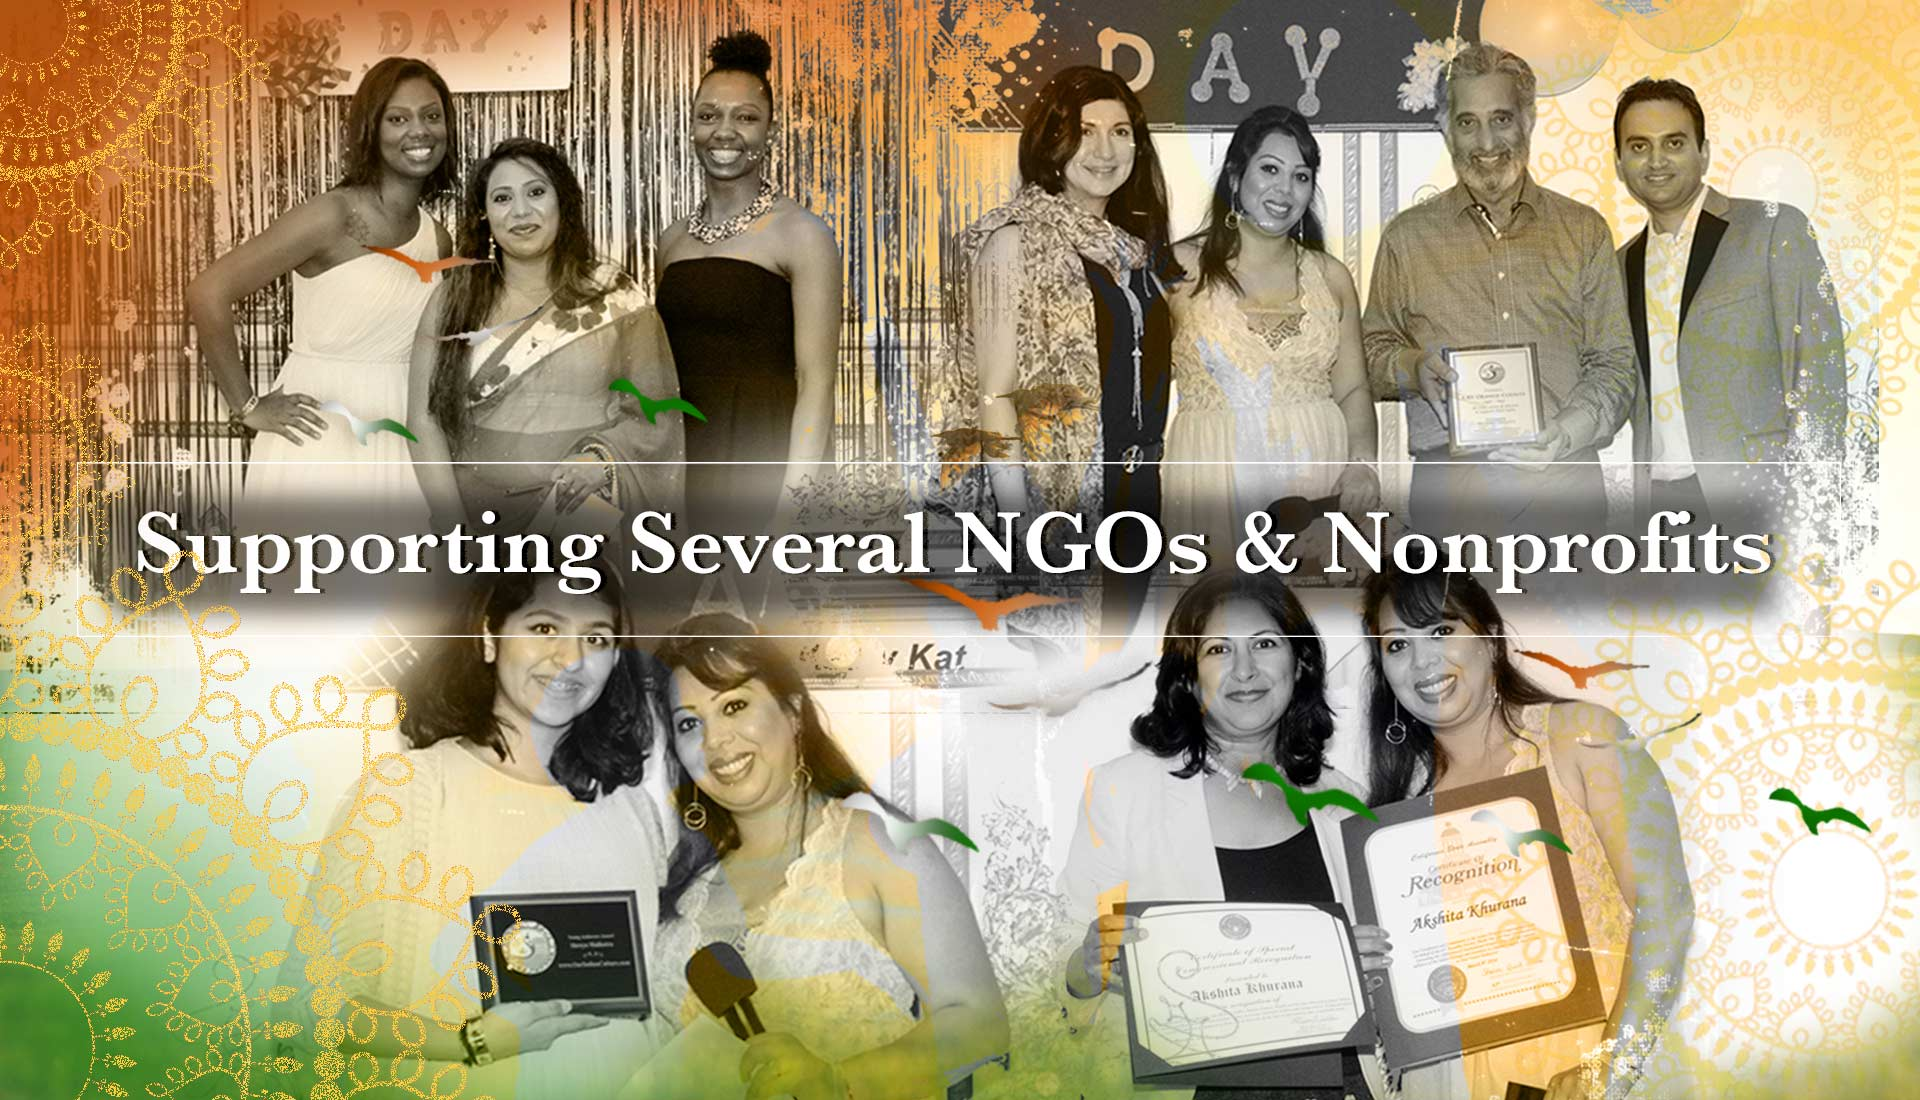 Our Indian Culture is Supporting Several NGOs And Nonprofits here in Irvine, Los Angeles, San Diego